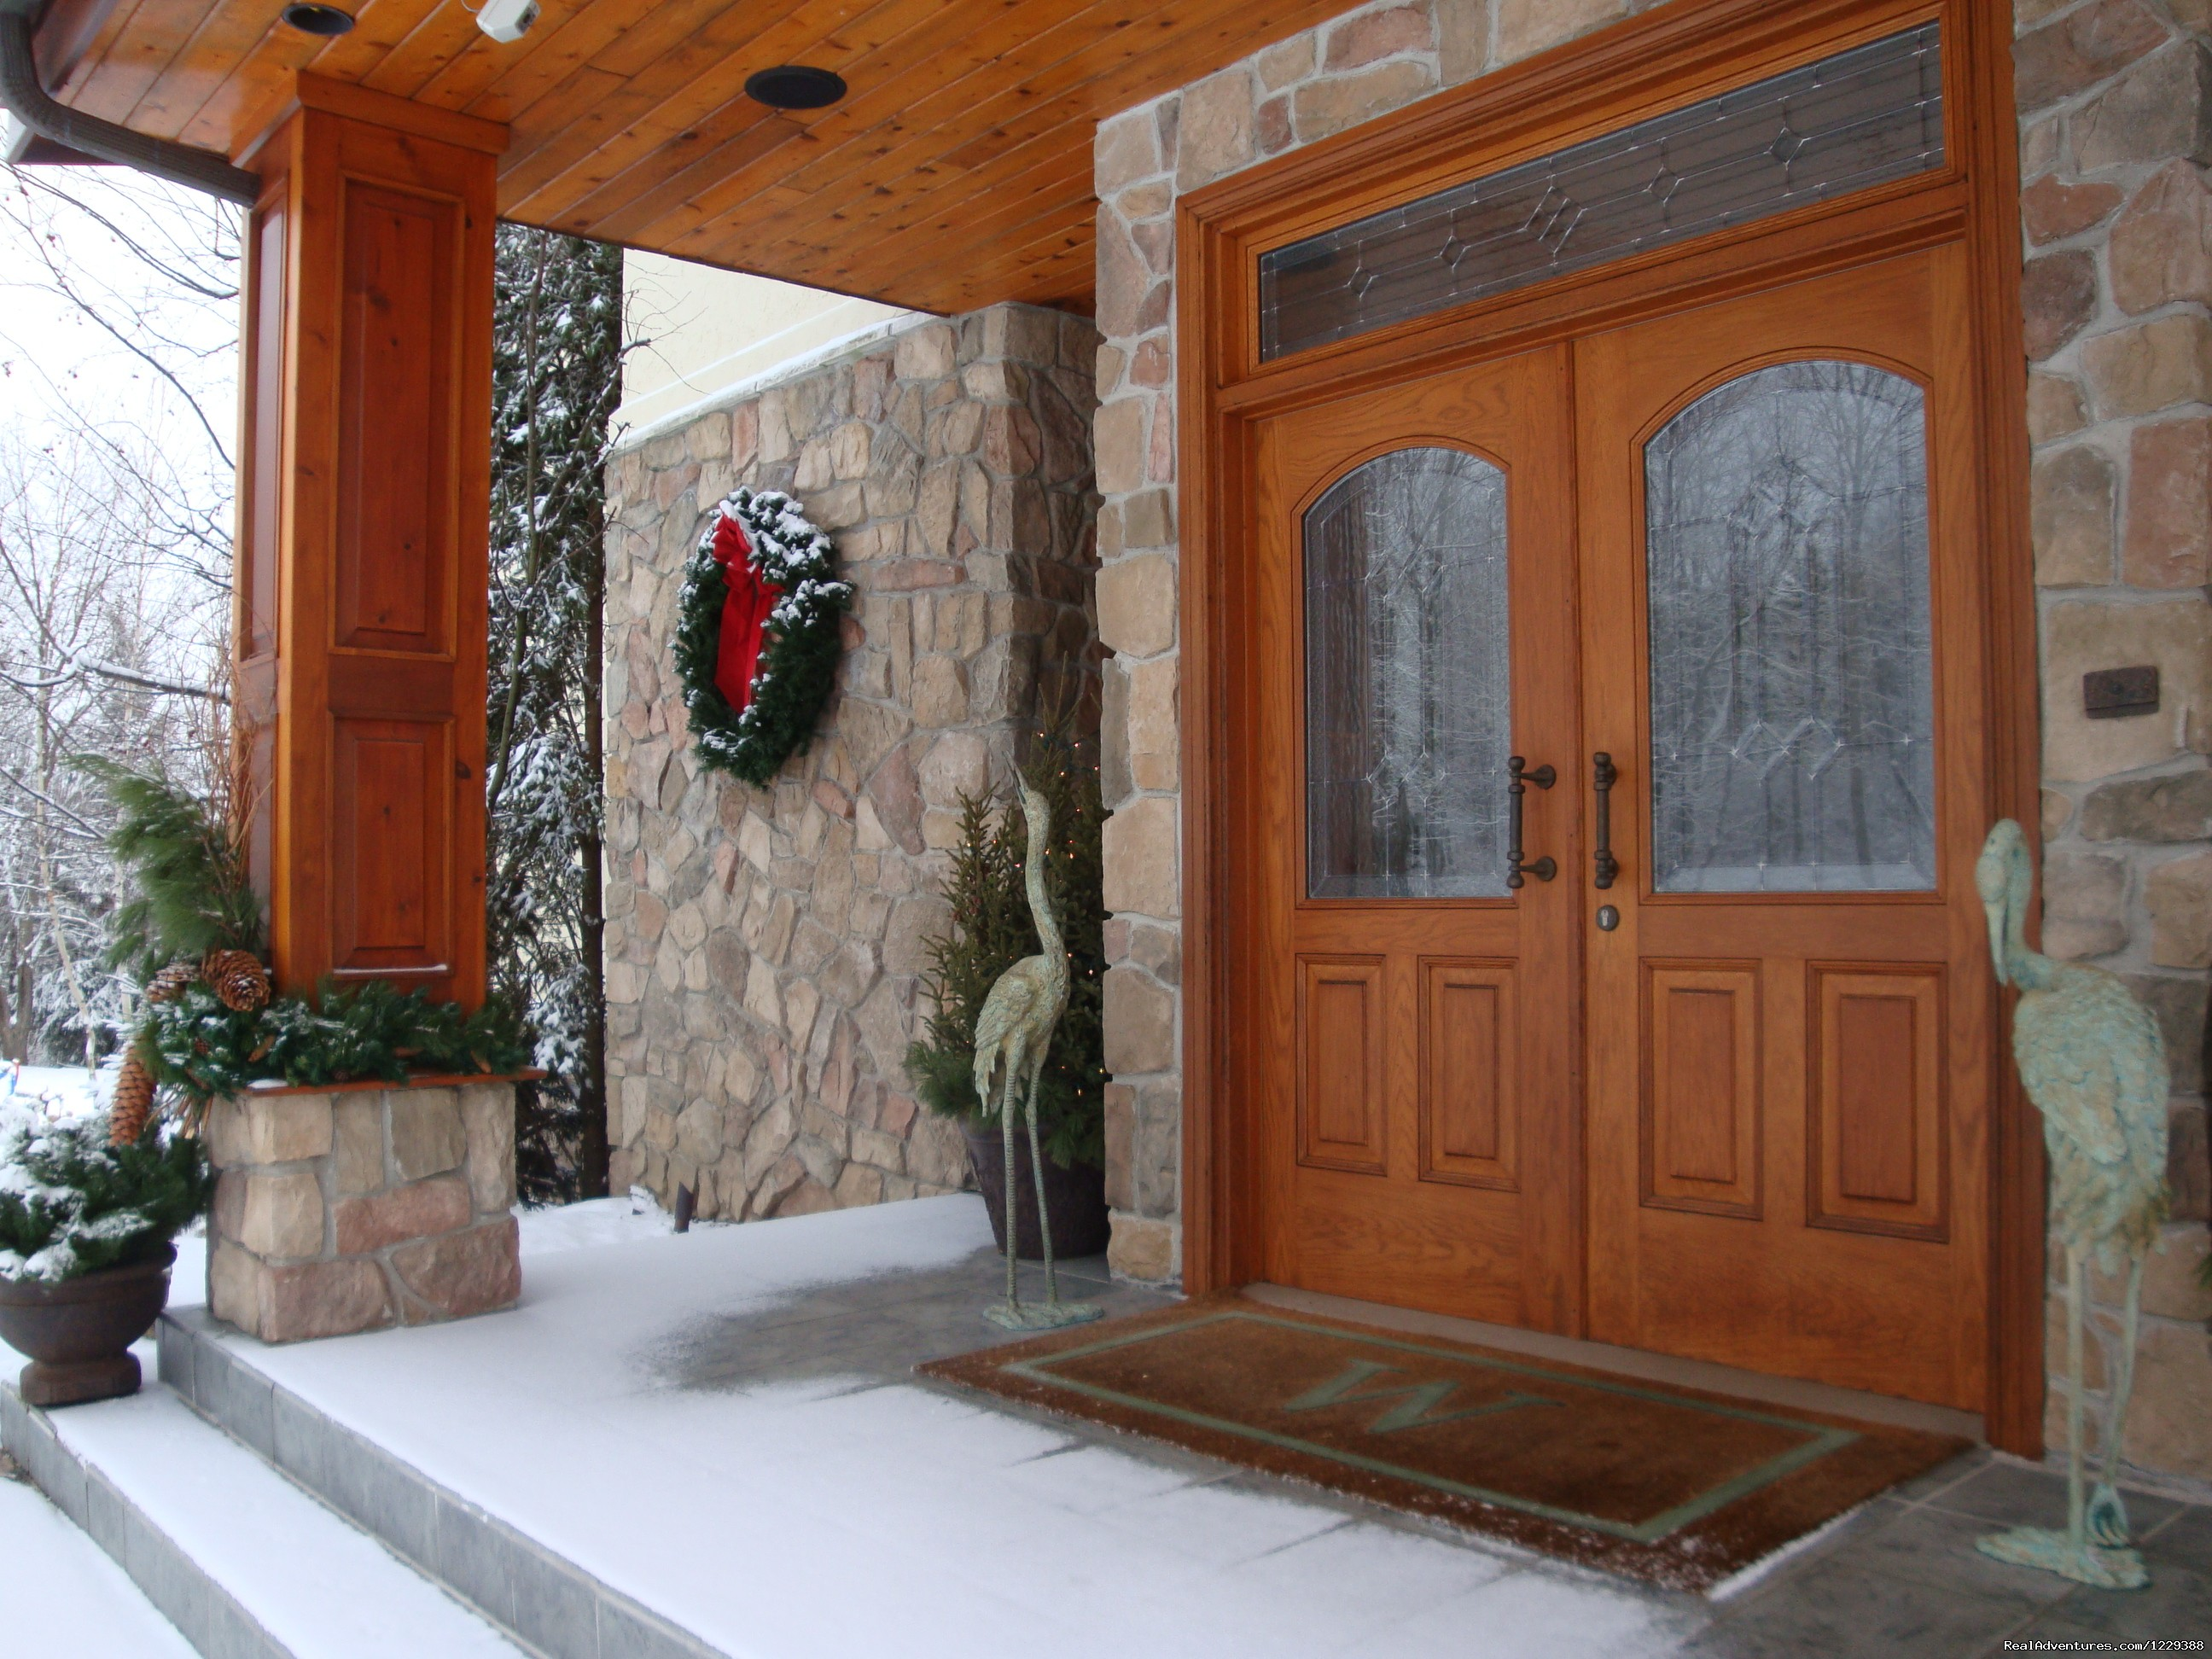 Snowy Front Entrance | Image #13/20 | Inn at Wawanissee Point